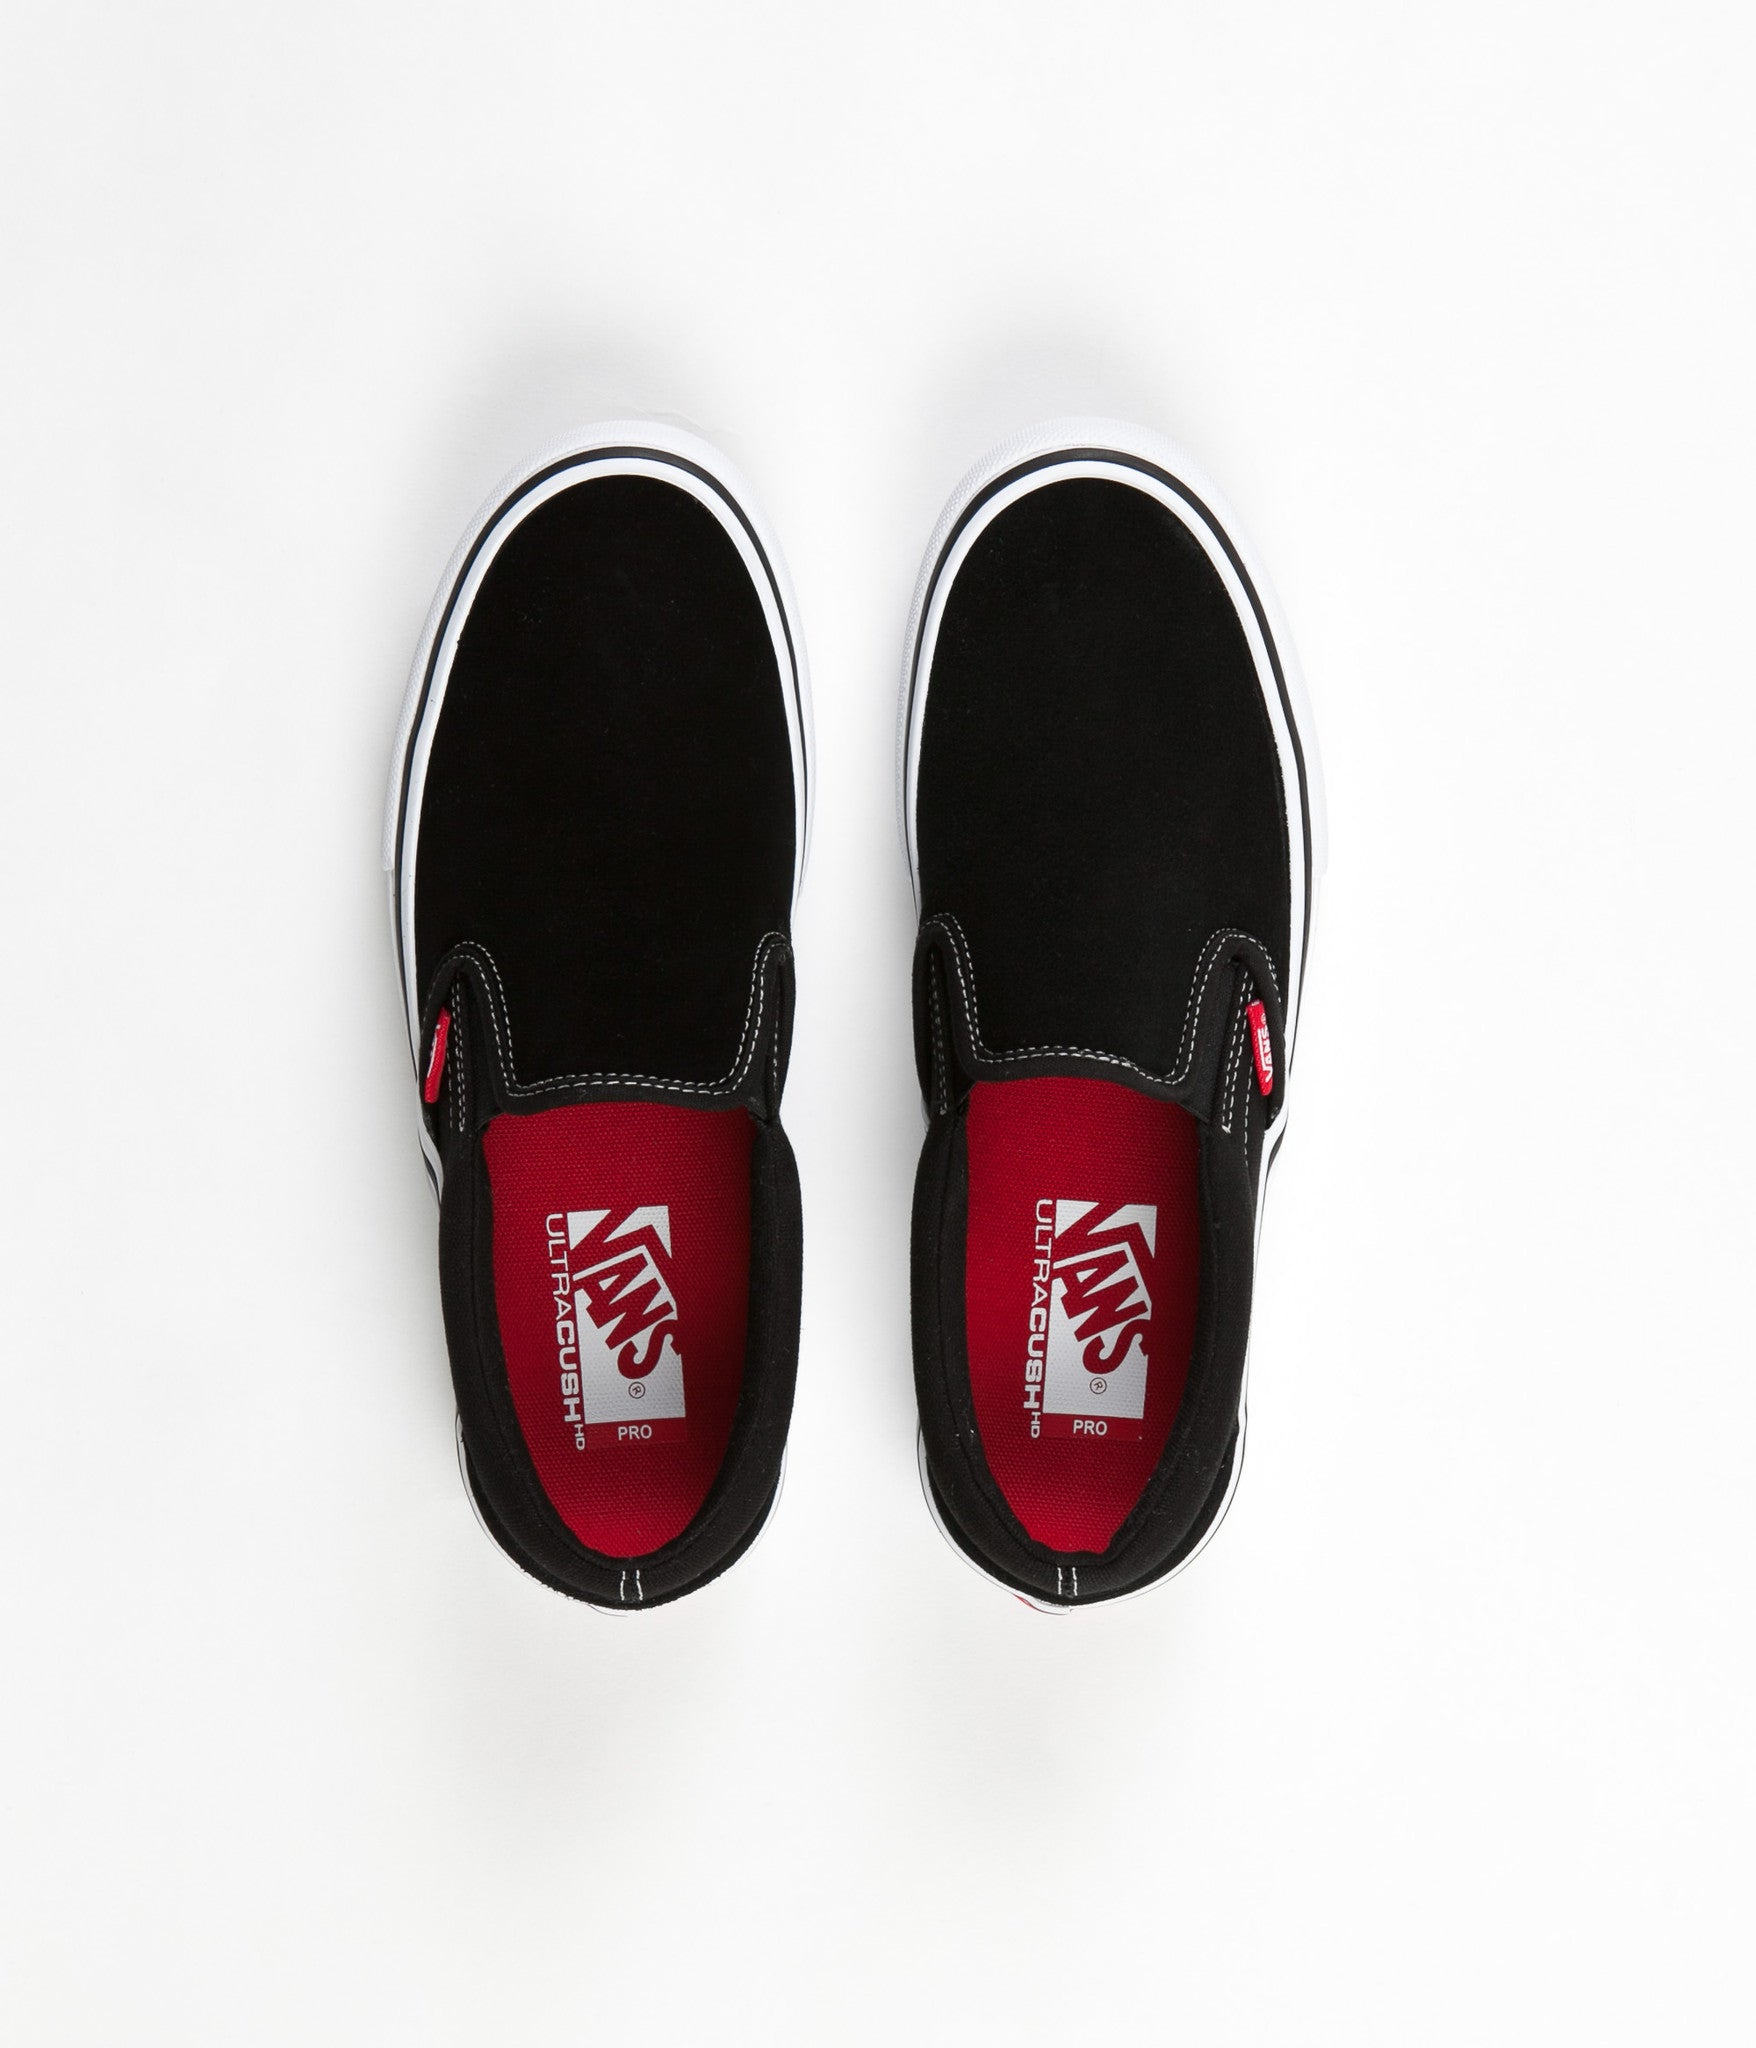 58f07b51ff6 Vans Slip On Pro Shoes - Black   White   Gum ...